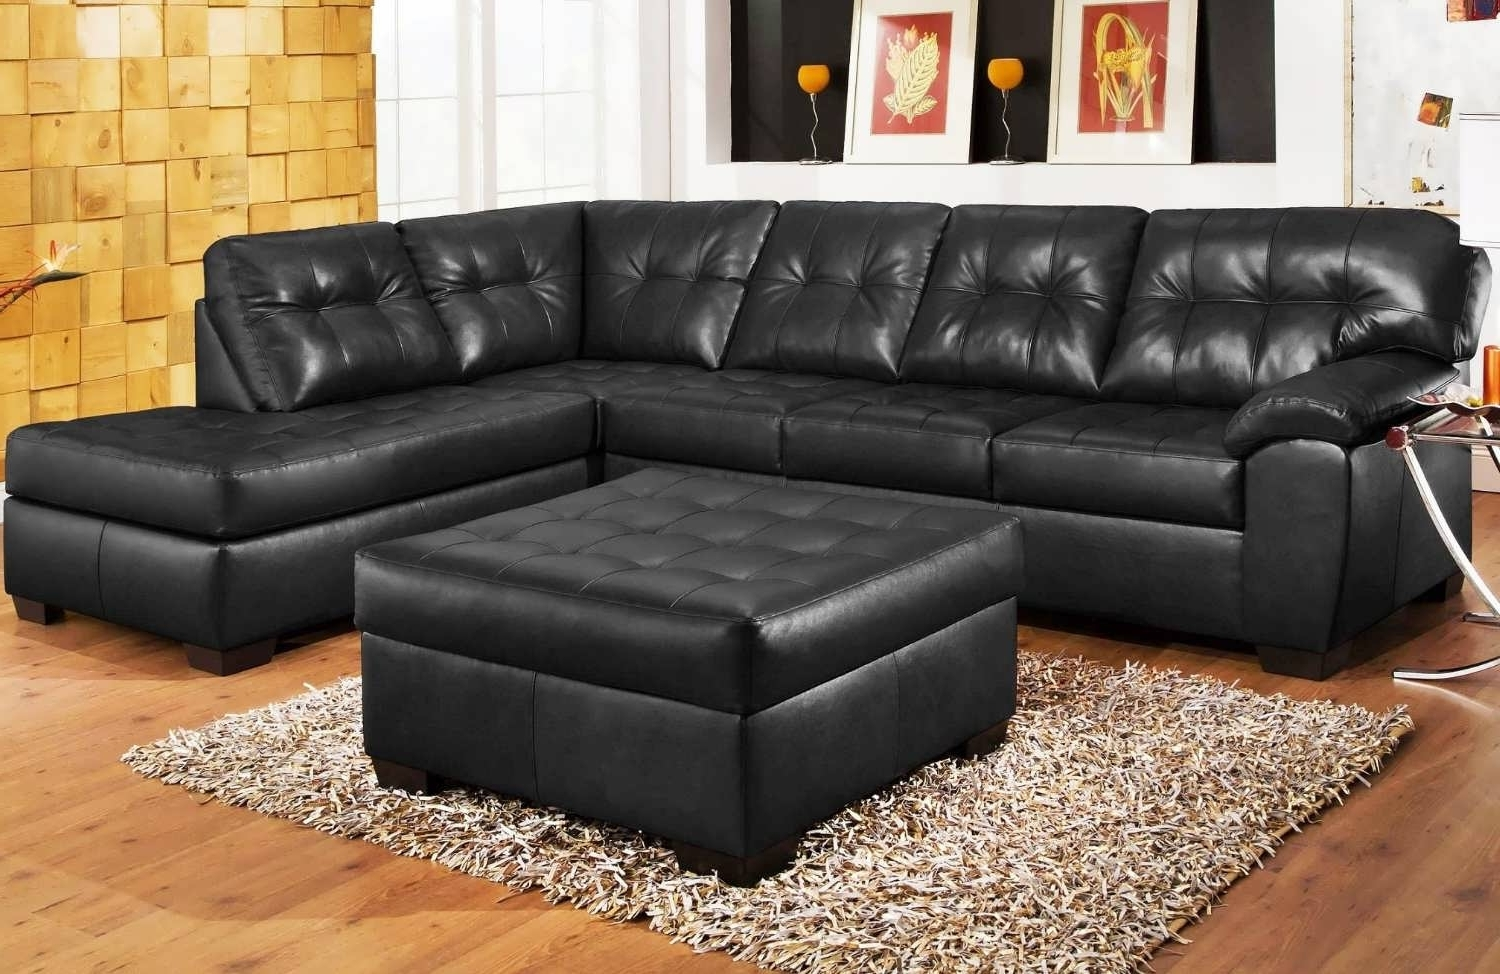 Black Leather Chaise Sofa Endearing Black Leather